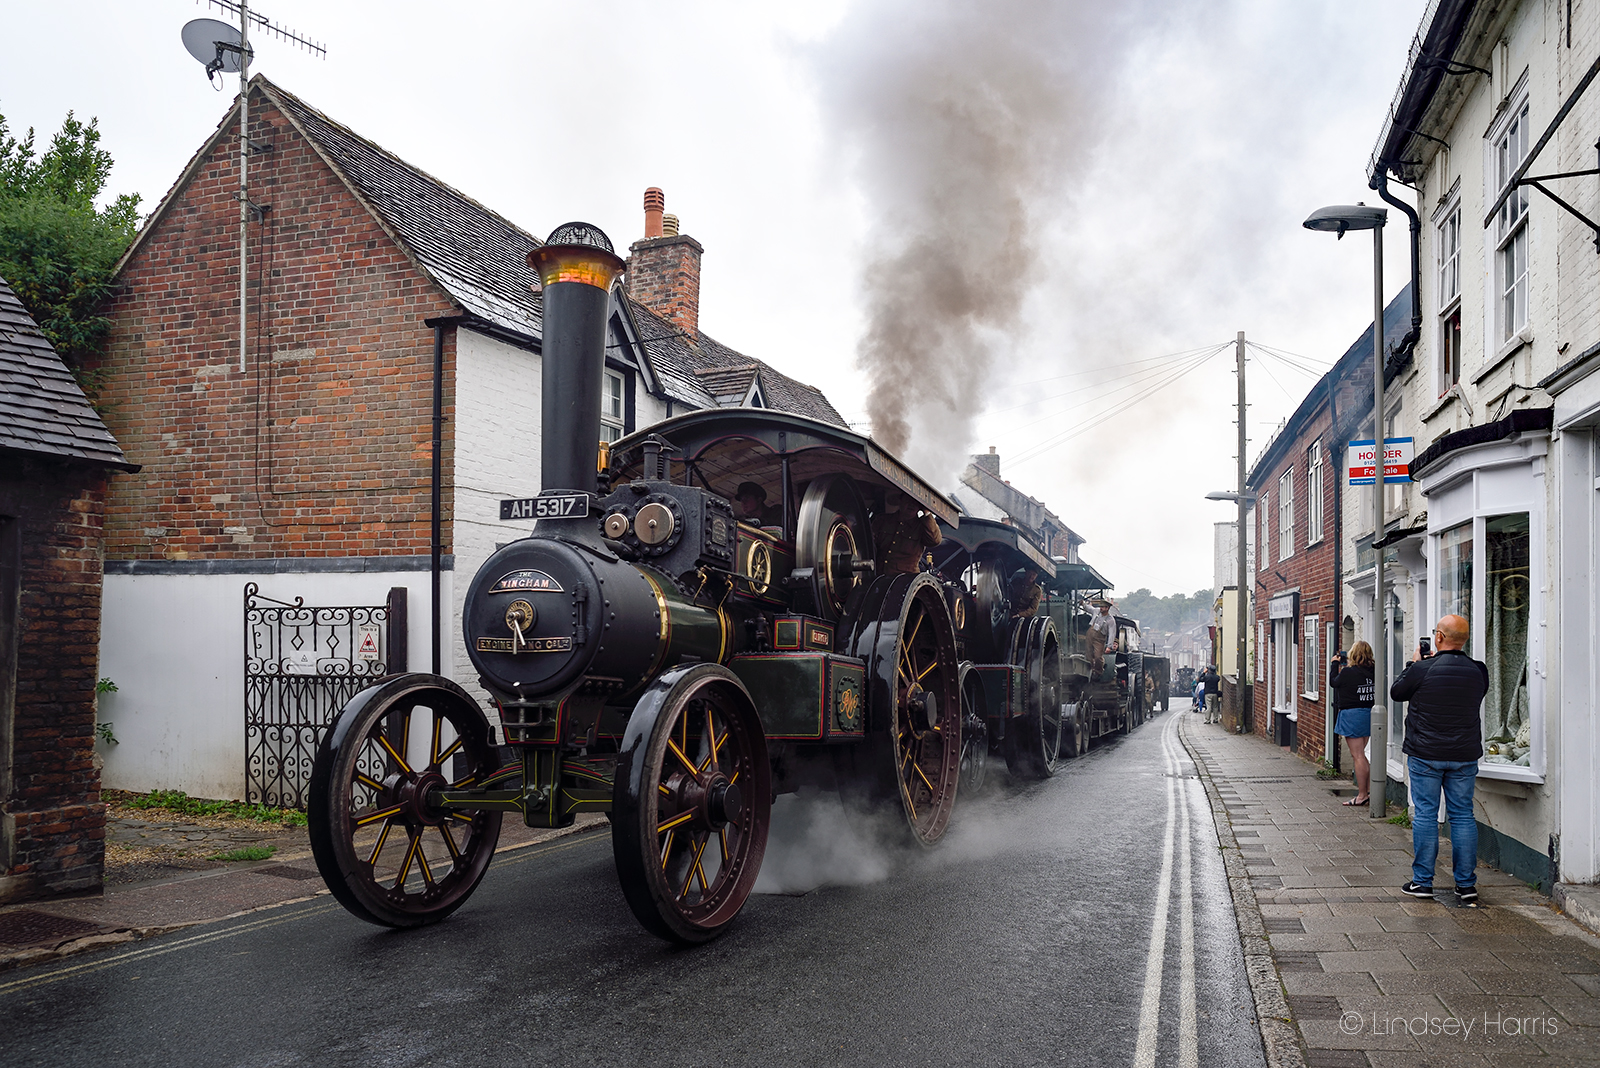 Traction engines from the WW1 Homecoming Parade at Salisbury Street, Blandford Forum, Dorset. Steam engines and WW1 military vehicles en route to the site of the 2018 Great Dorset Steam Fair.